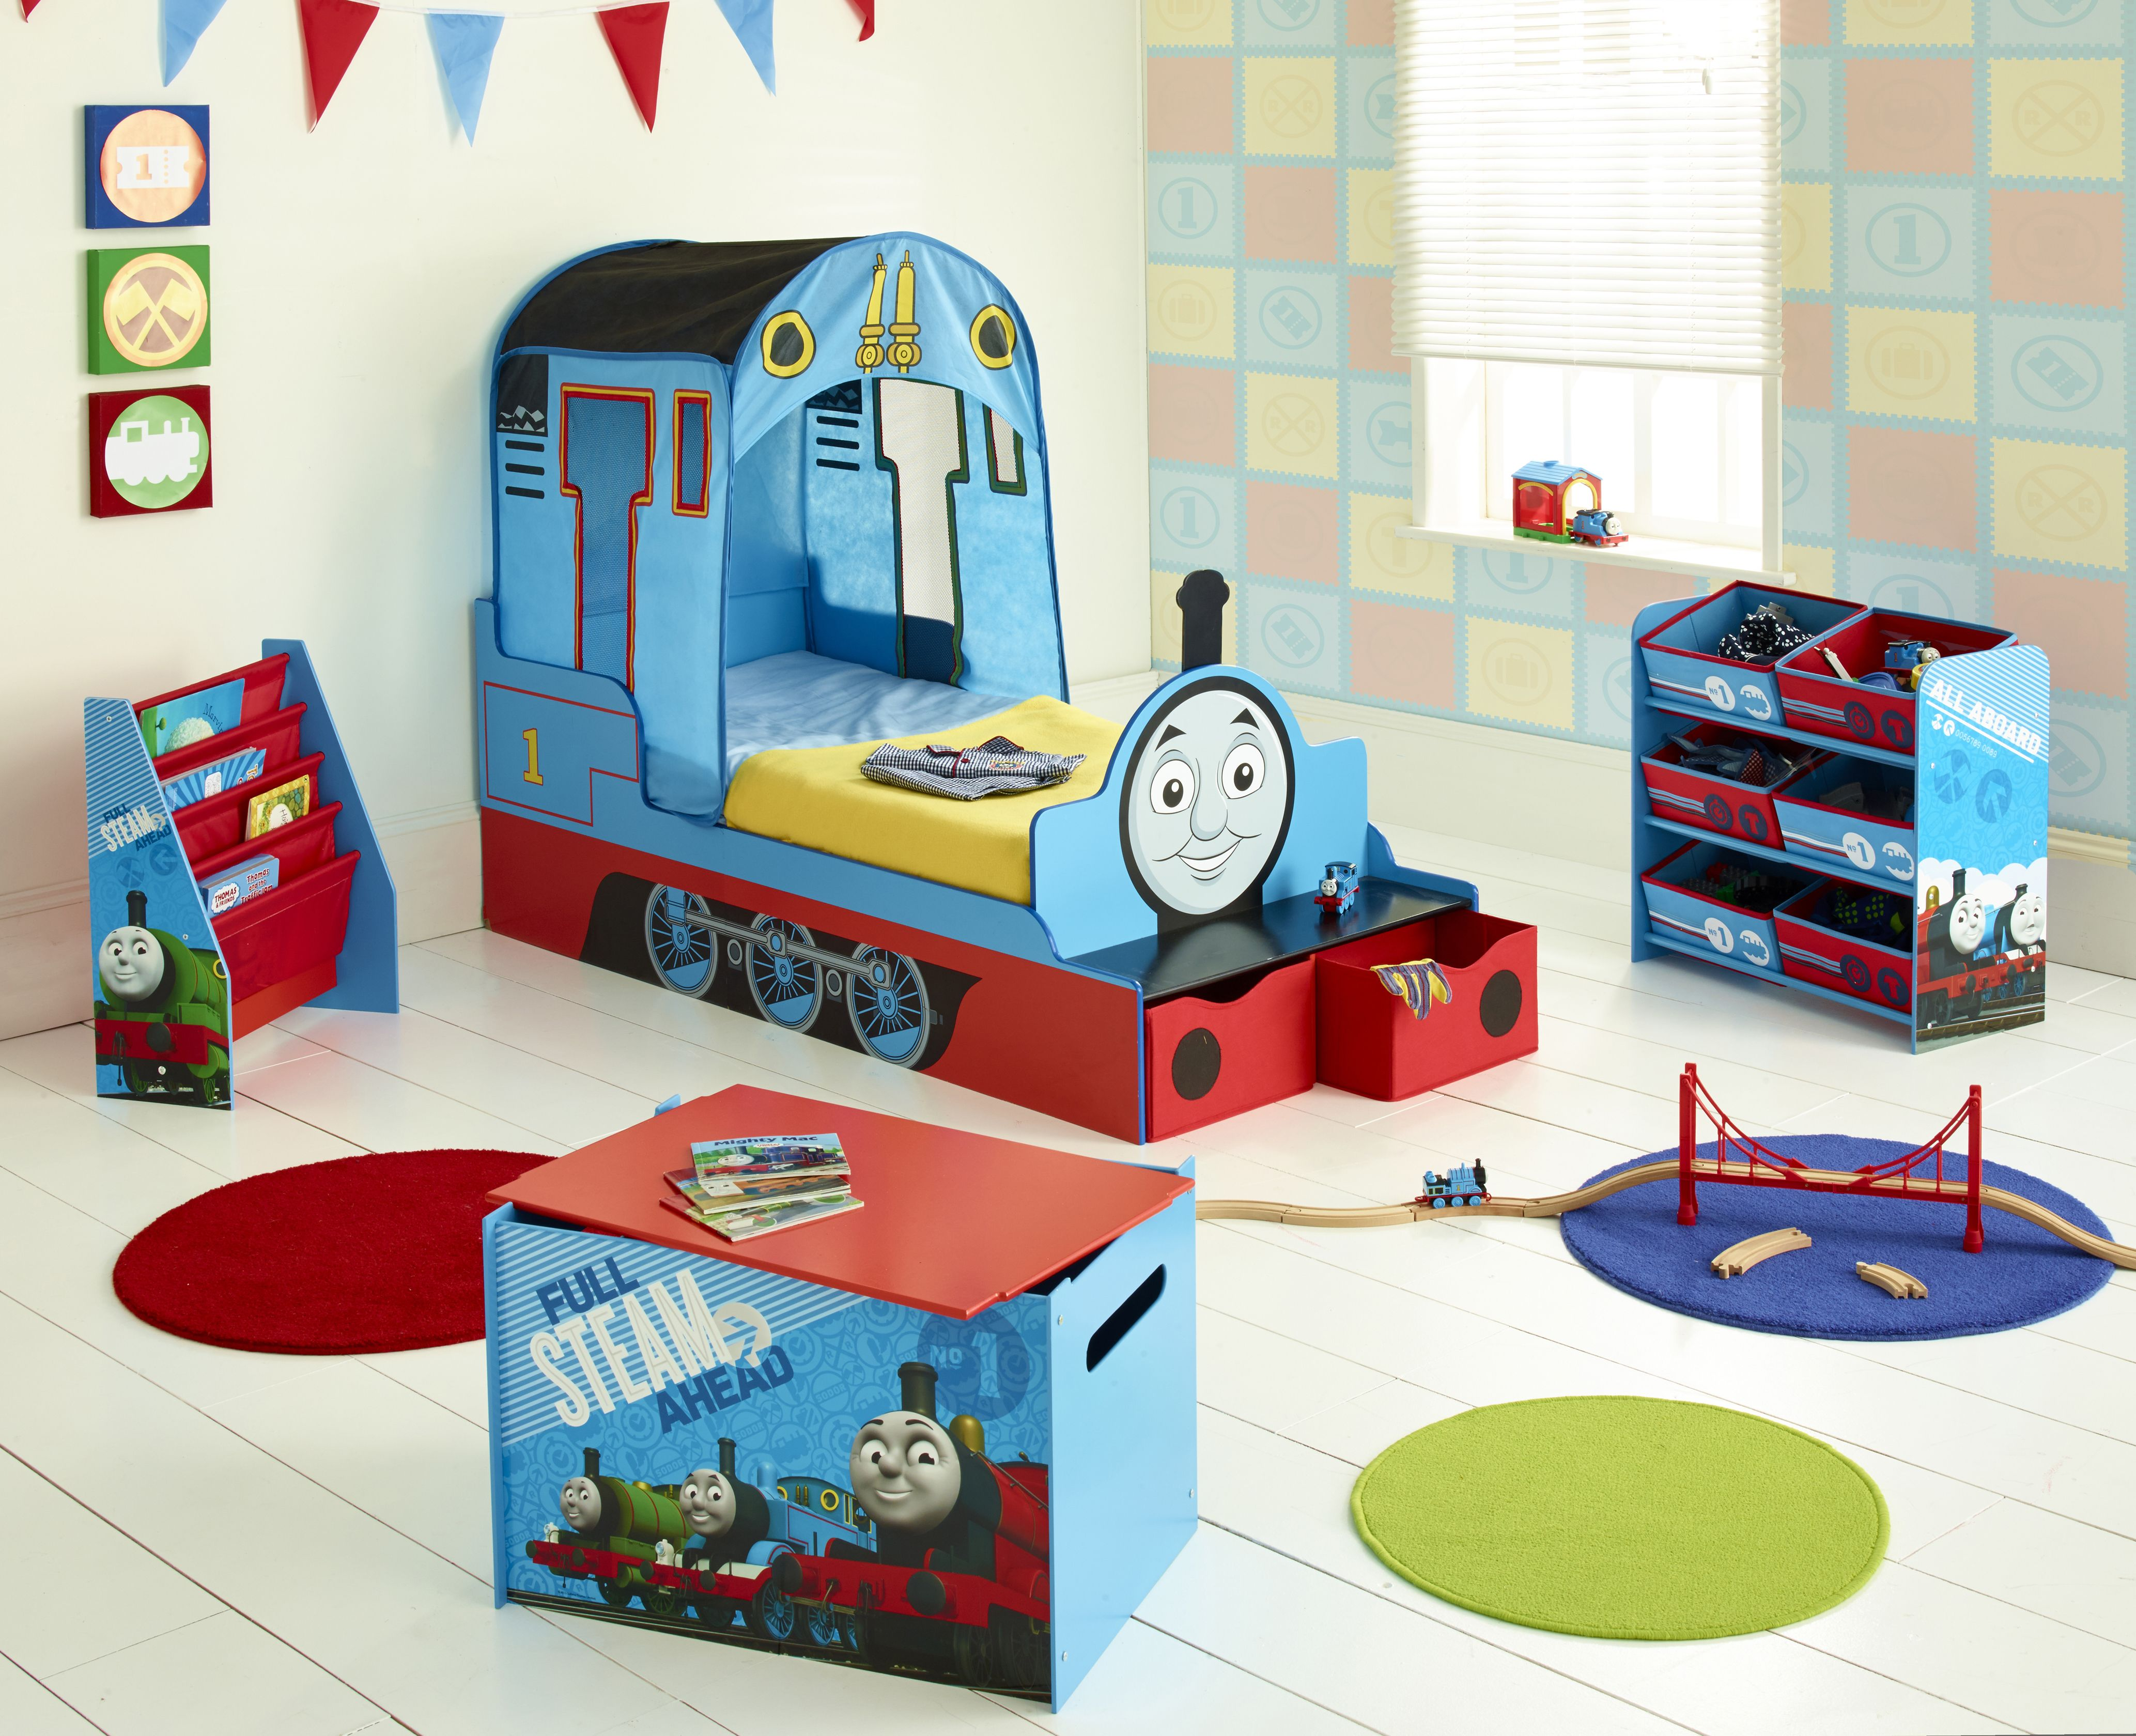 Thomas The Tank Engine Bedroom Furniture   Fantastic Feature Toddler Bed  Plus Toy Boxes, Storage